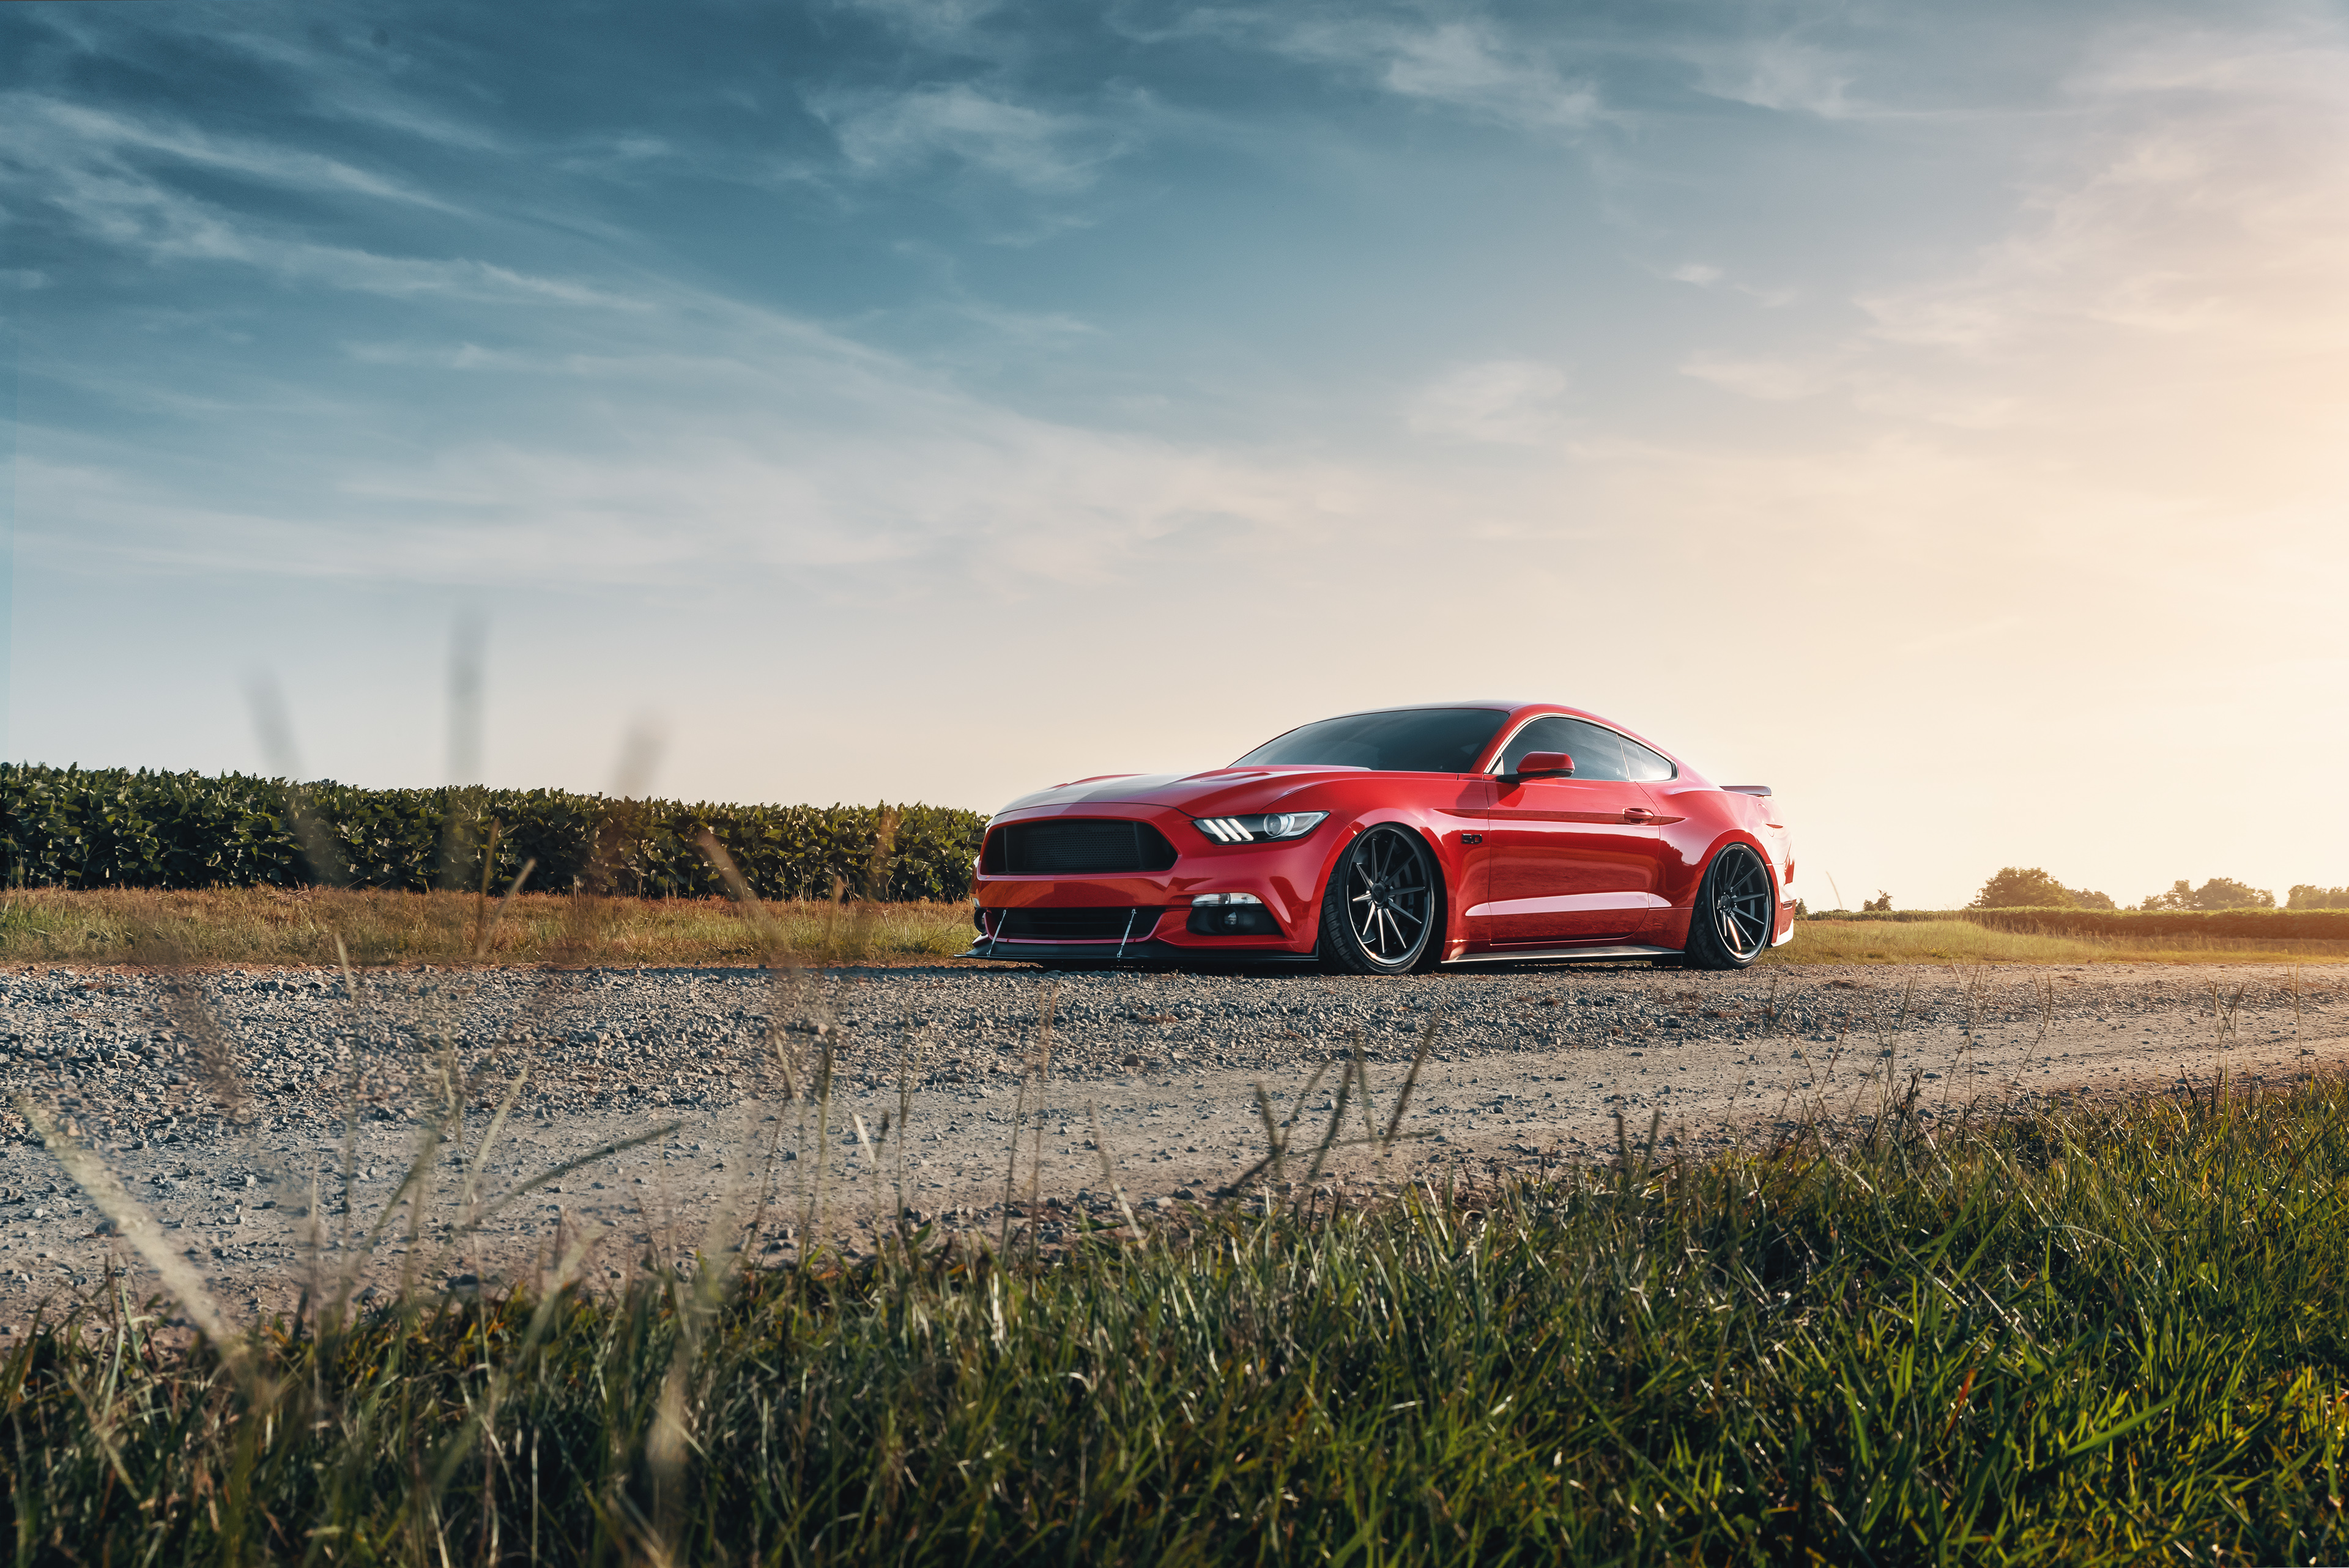 Ford Mustang GT Red, HD Cars, 4k Wallpapers, Images ...